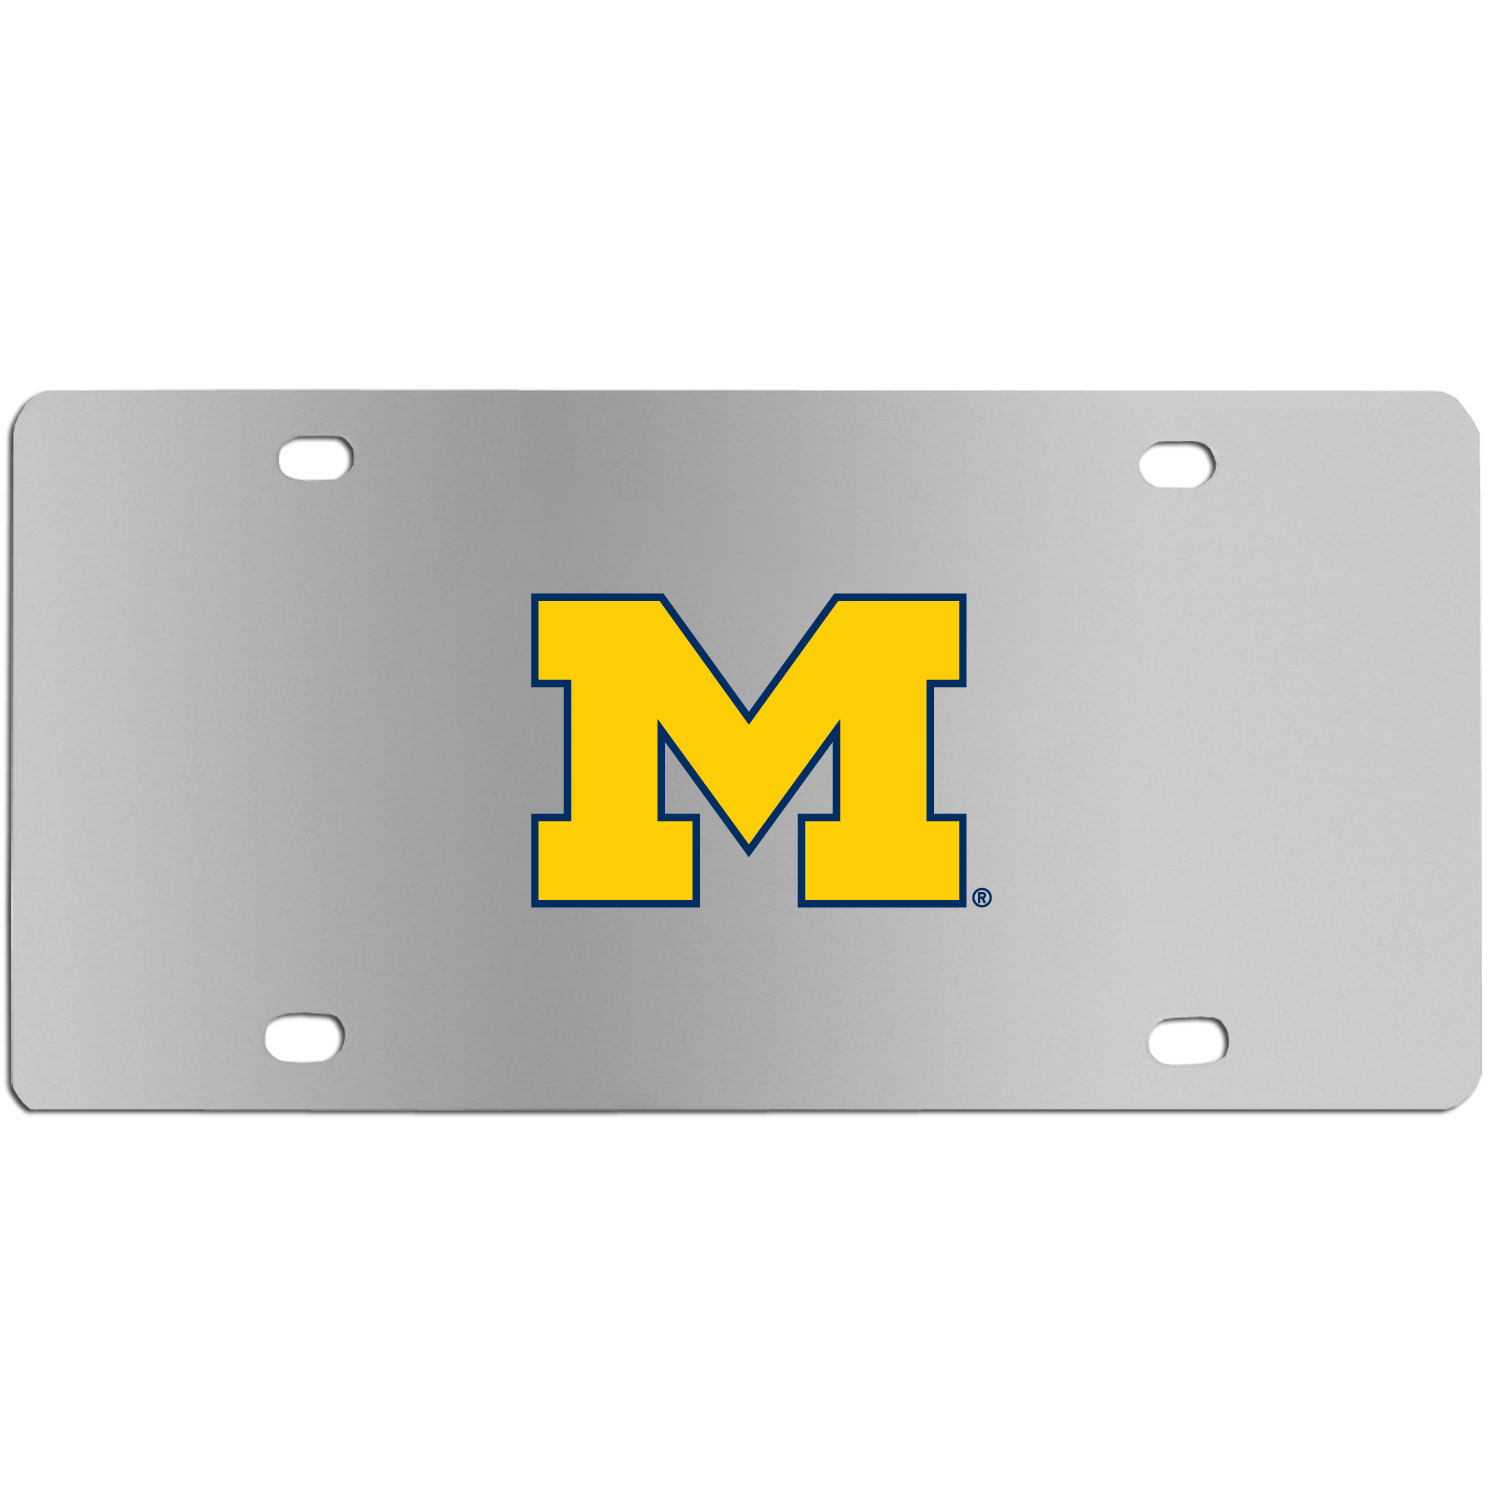 Michigan Wolverines Steel License Plate Wall Plaque - This high-quality stainless steel license plate features a detailed team logo on a the polished surface. The attractive plate is perfect for wall mounting in your home or office to become the perfect die-hard Michigan Wolverines fan decor.